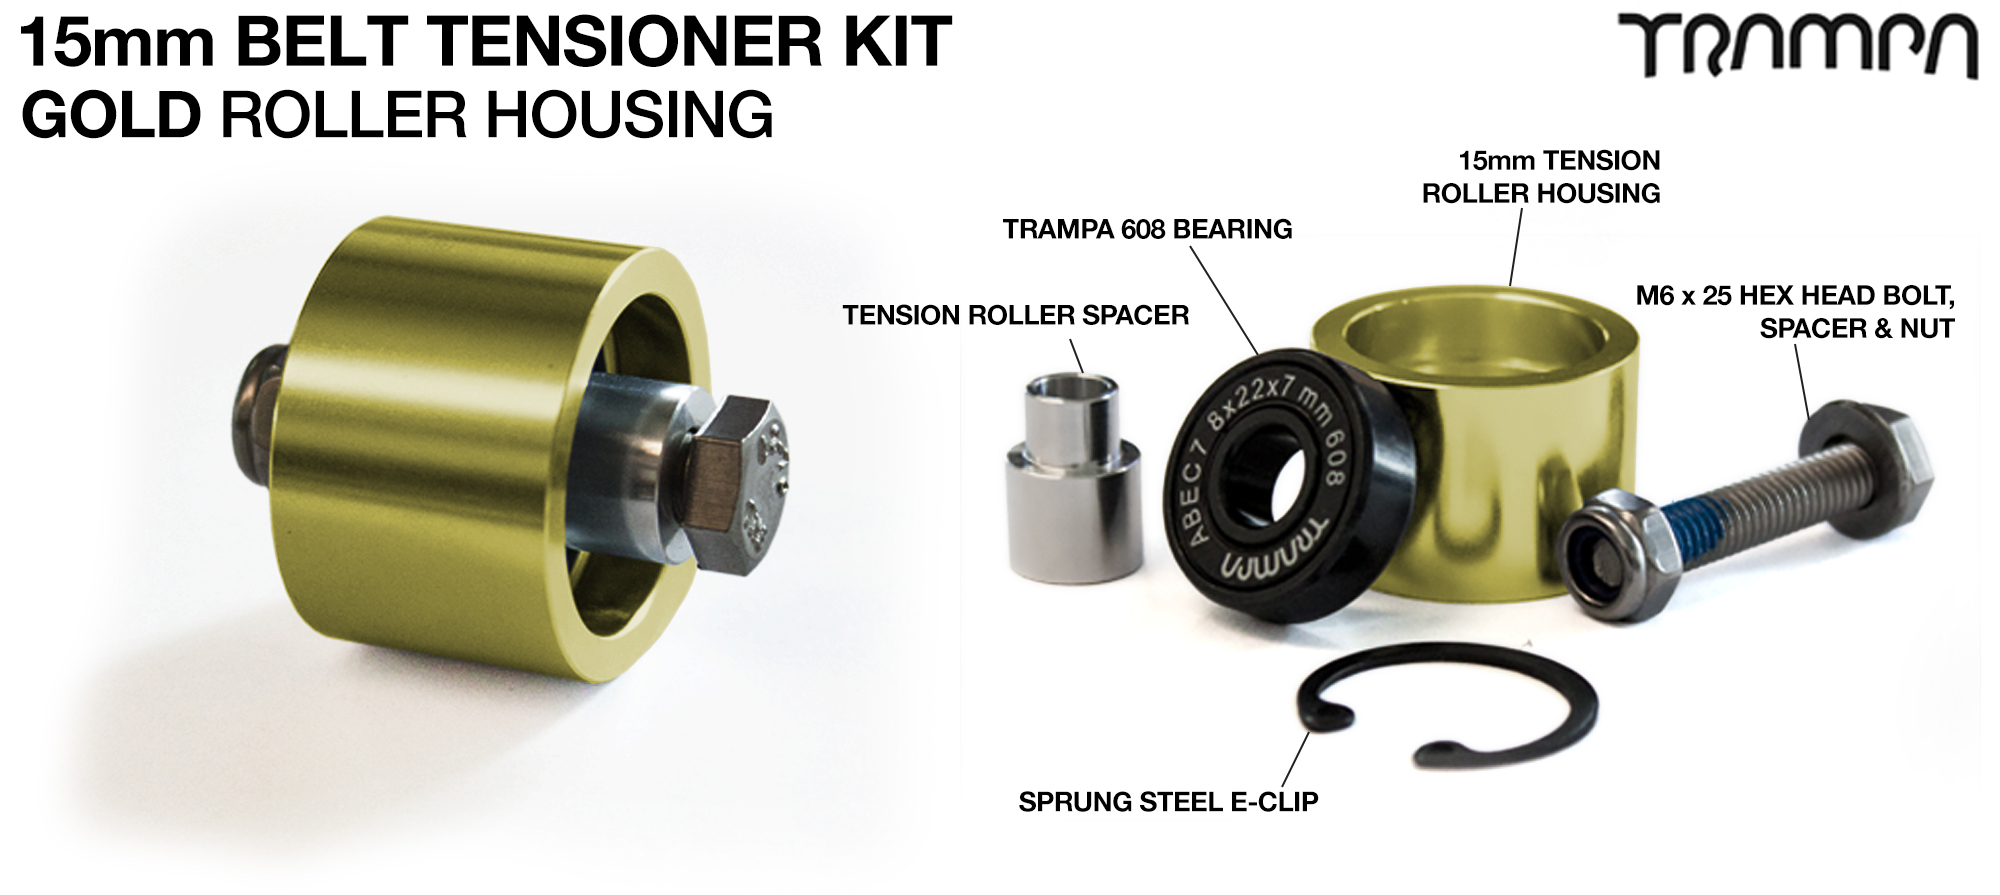 15mm Belt Tensioner - GOLD